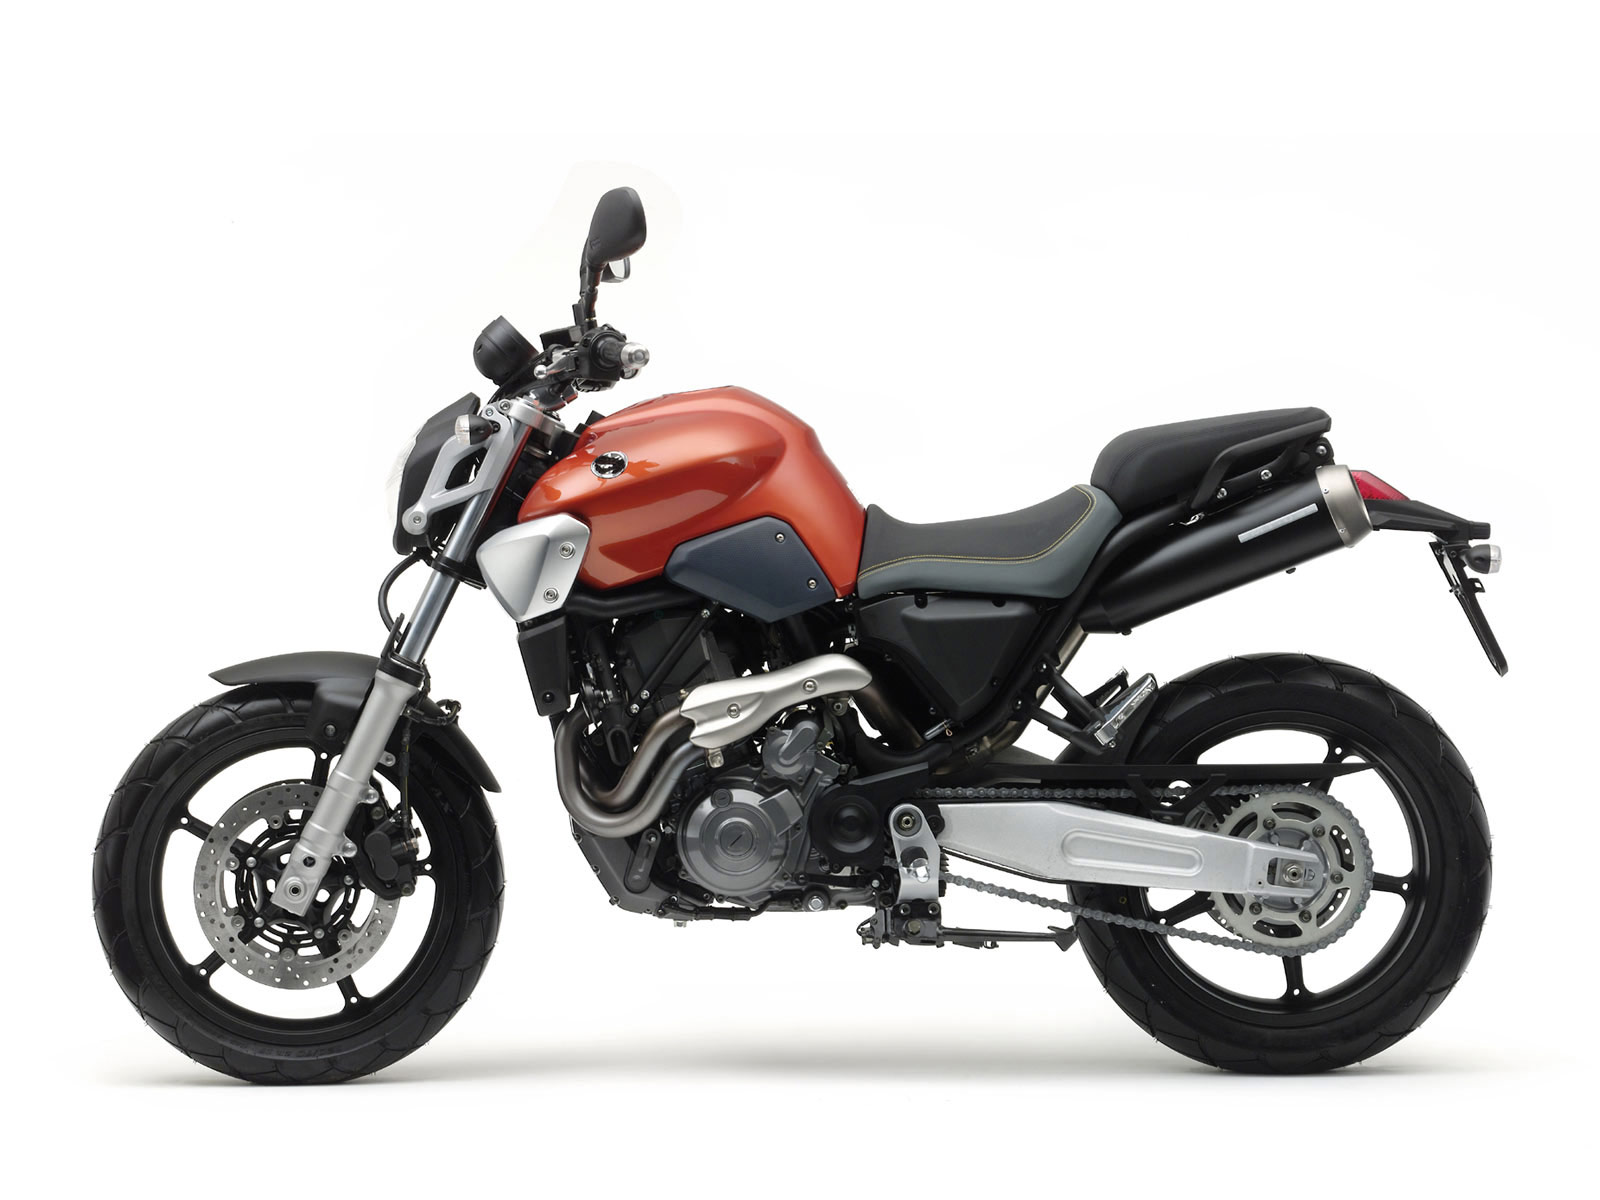 2007 YAMAHA MT03 Motorcycle Pictures, Specifications